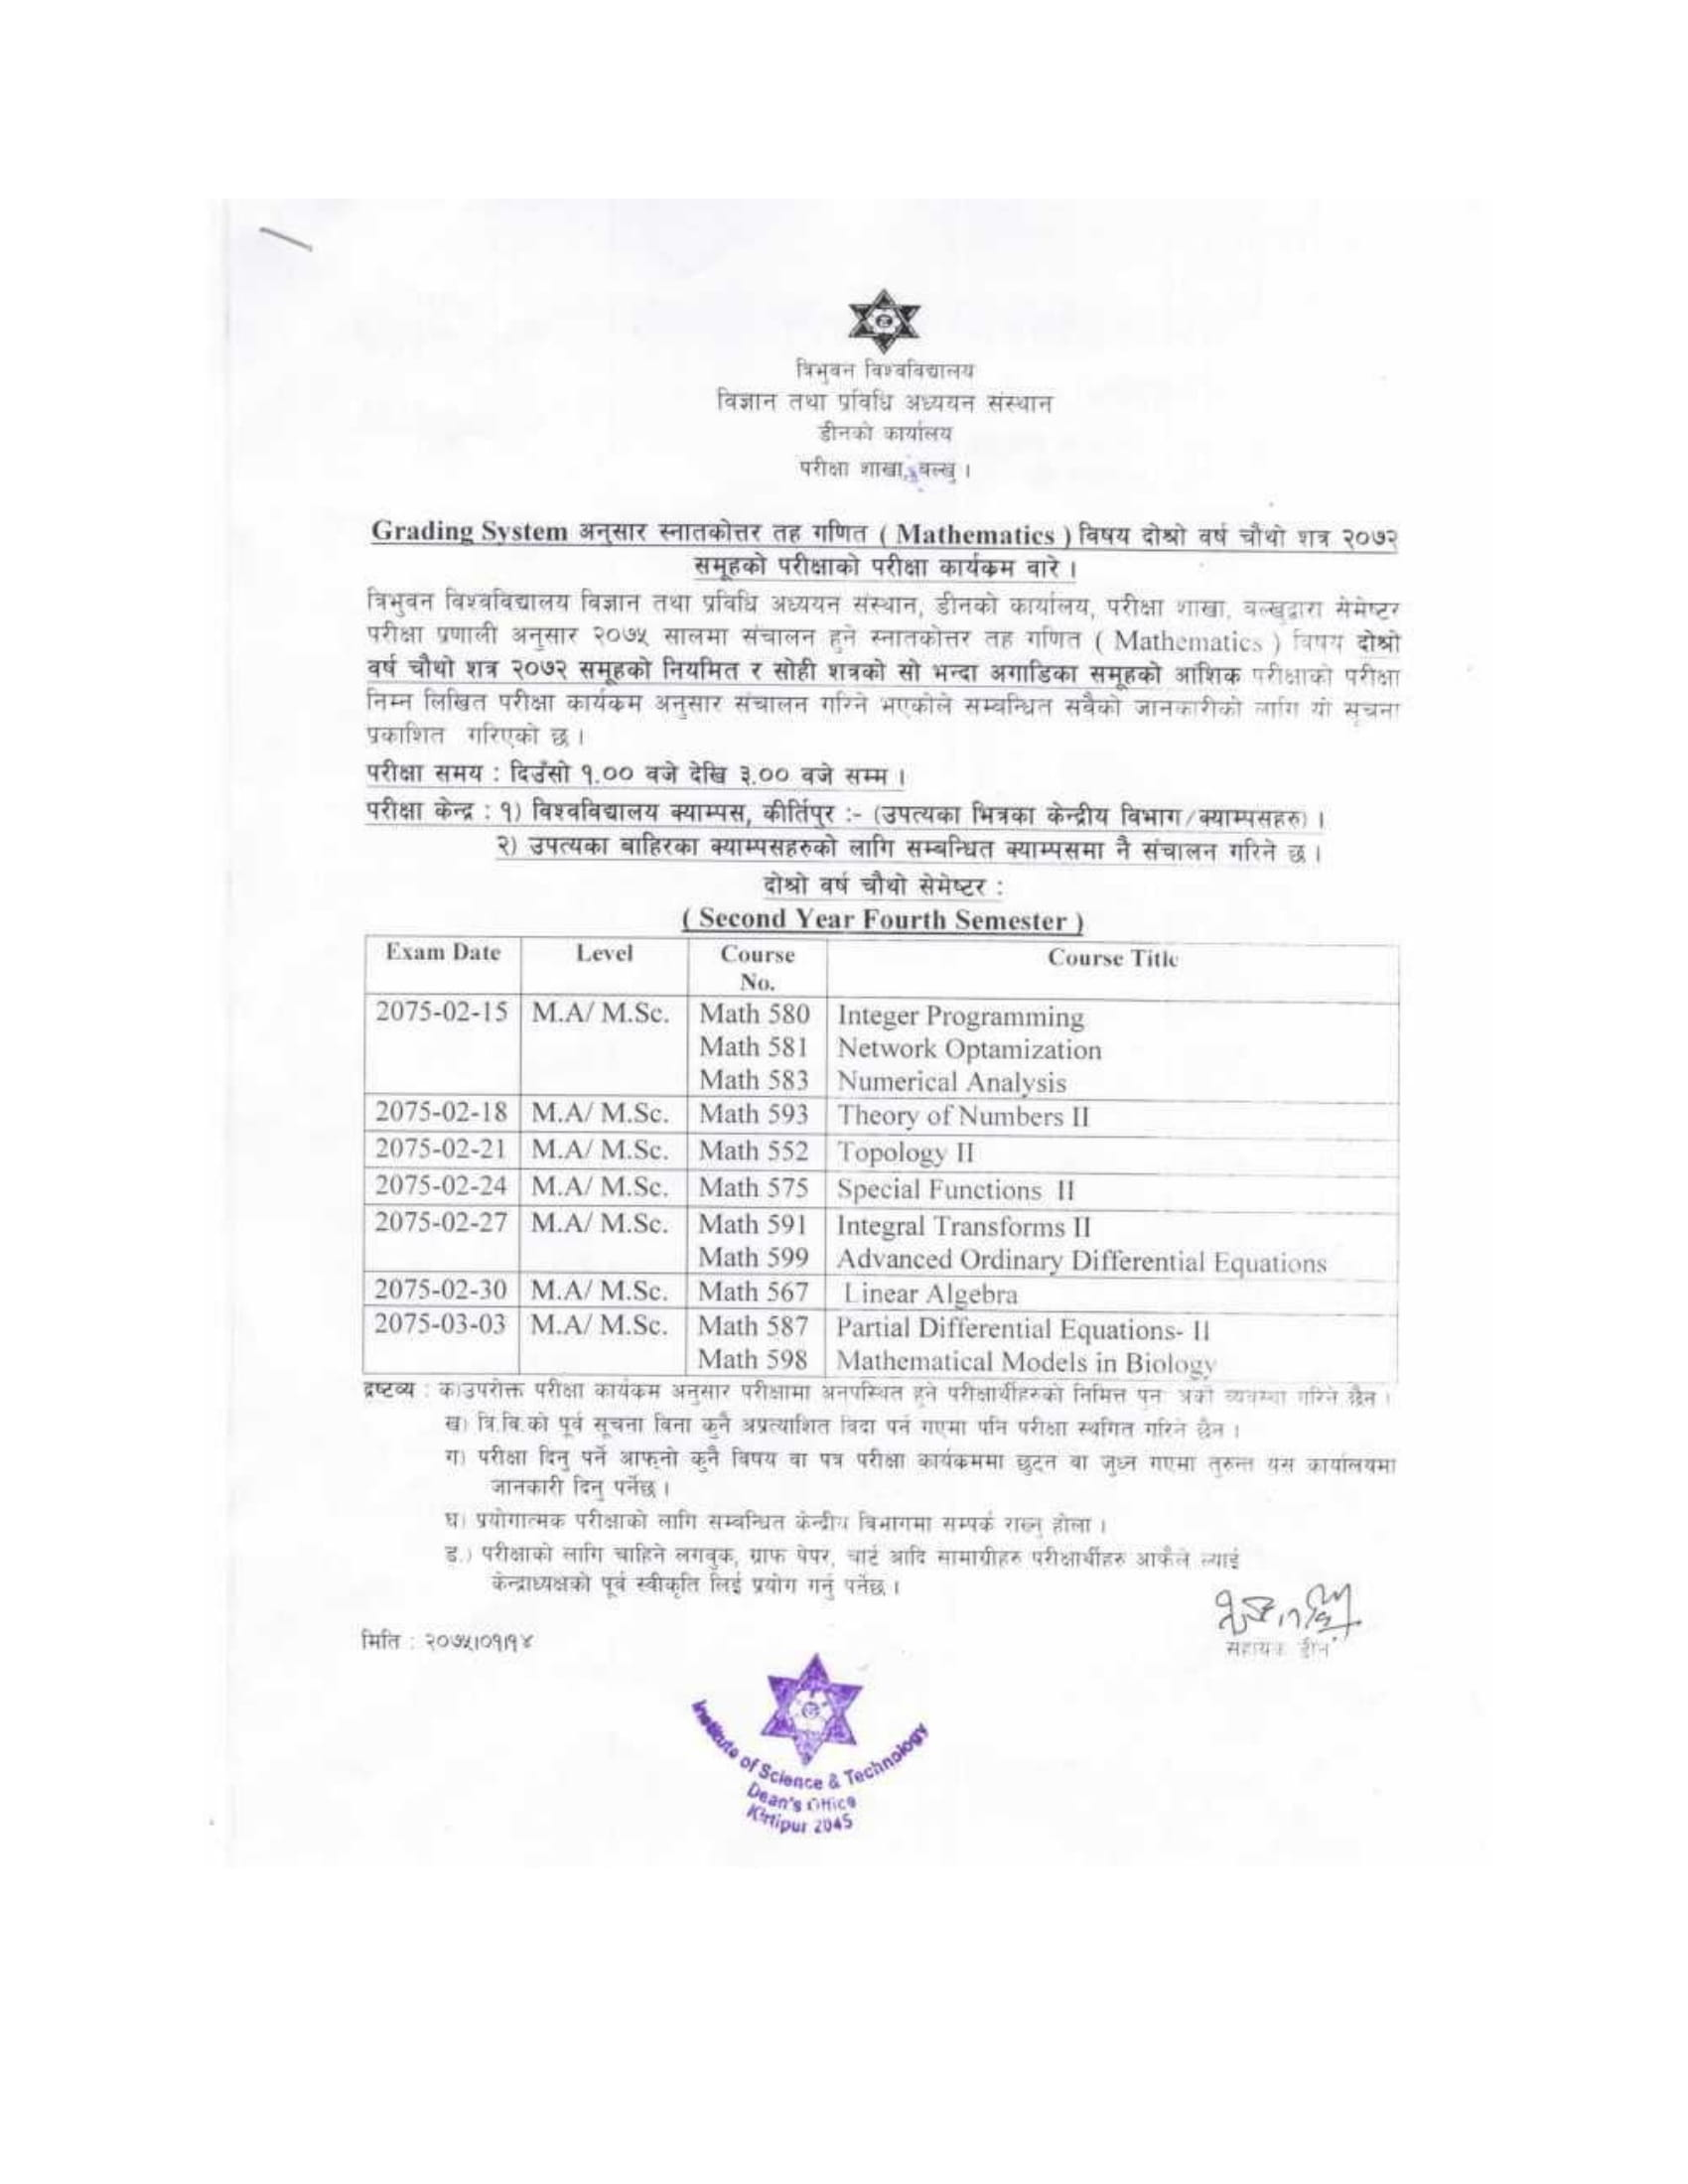 M.Sc. Mathematics IV Semester Exam routine published